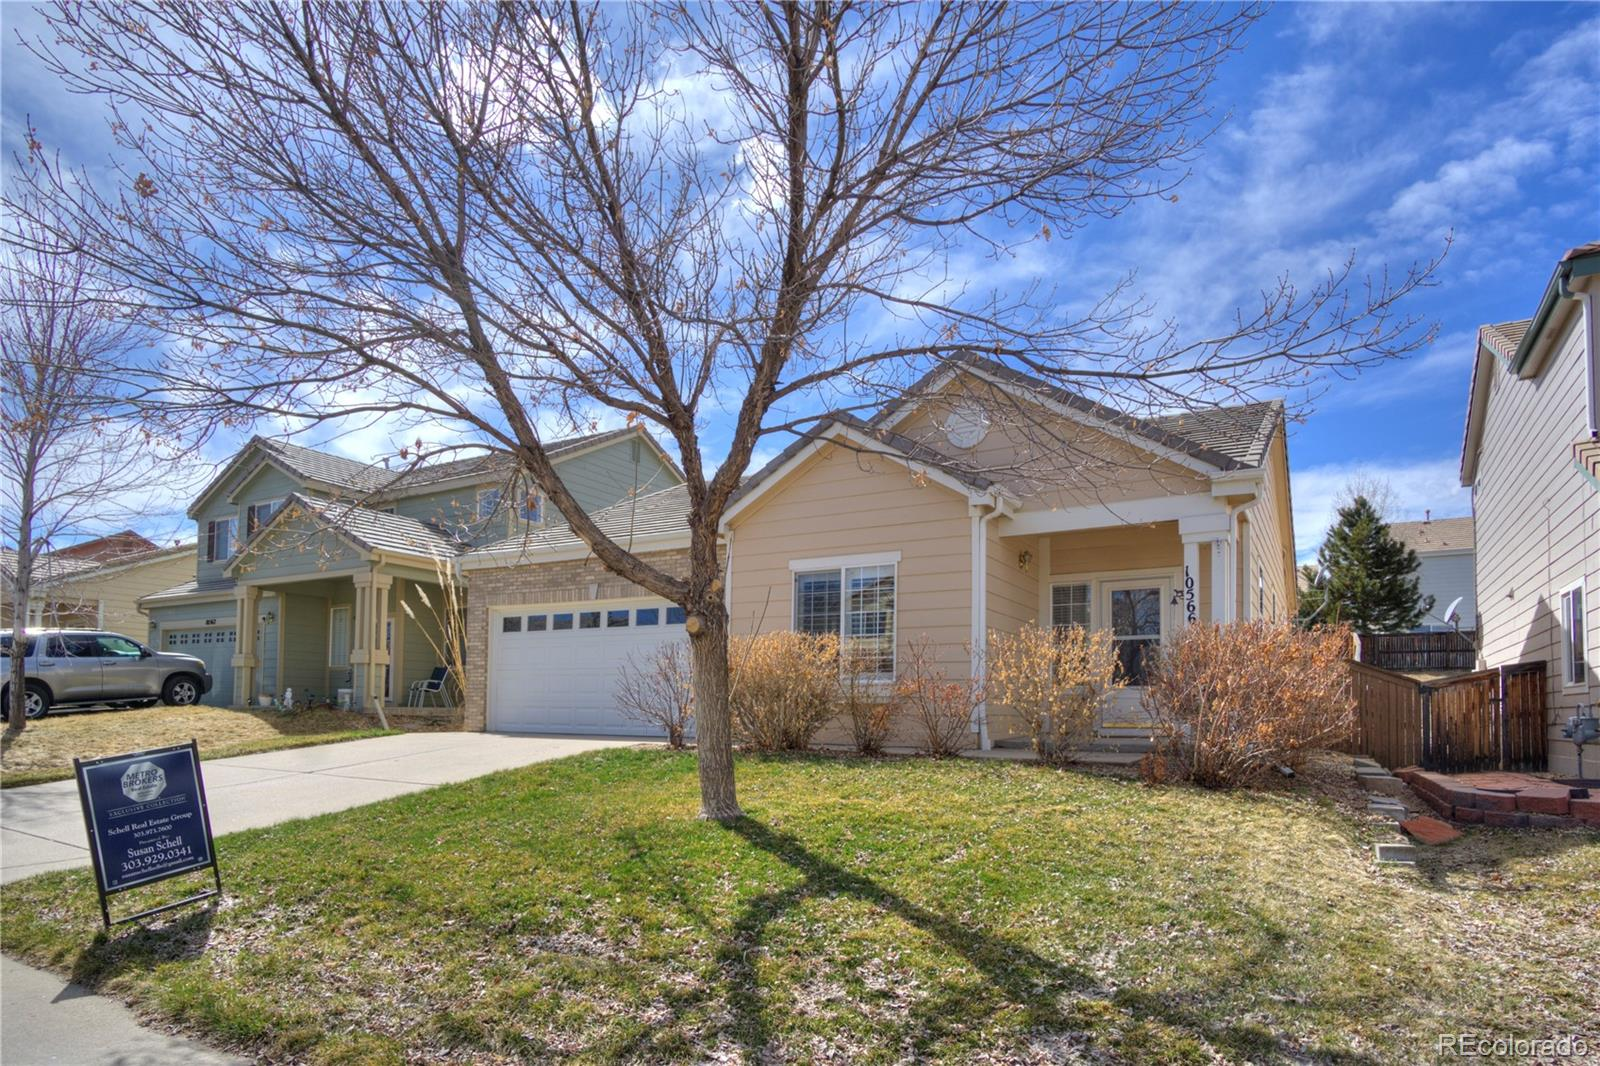 MLS# 4282289 - 1 - 10566 Tracewood Circle, Highlands Ranch, CO 80130